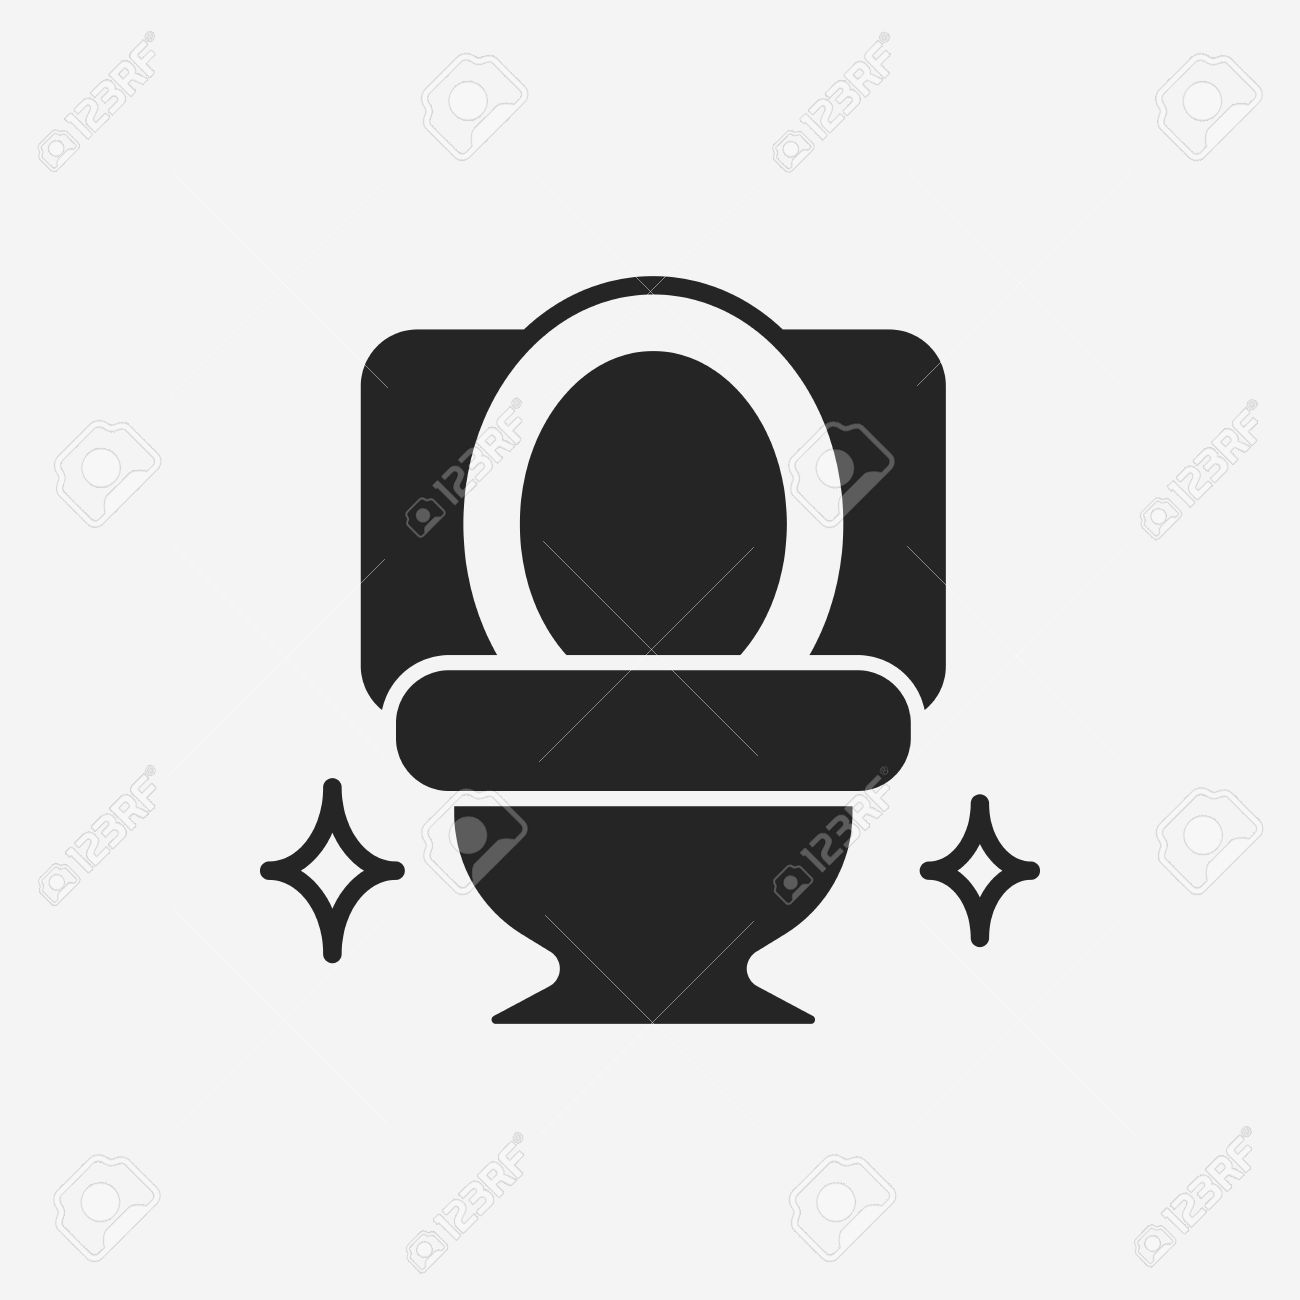 Toilet seat icon Stock Vector   42761851. Toilet Seat Icon Royalty Free Cliparts  Vectors  And Stock